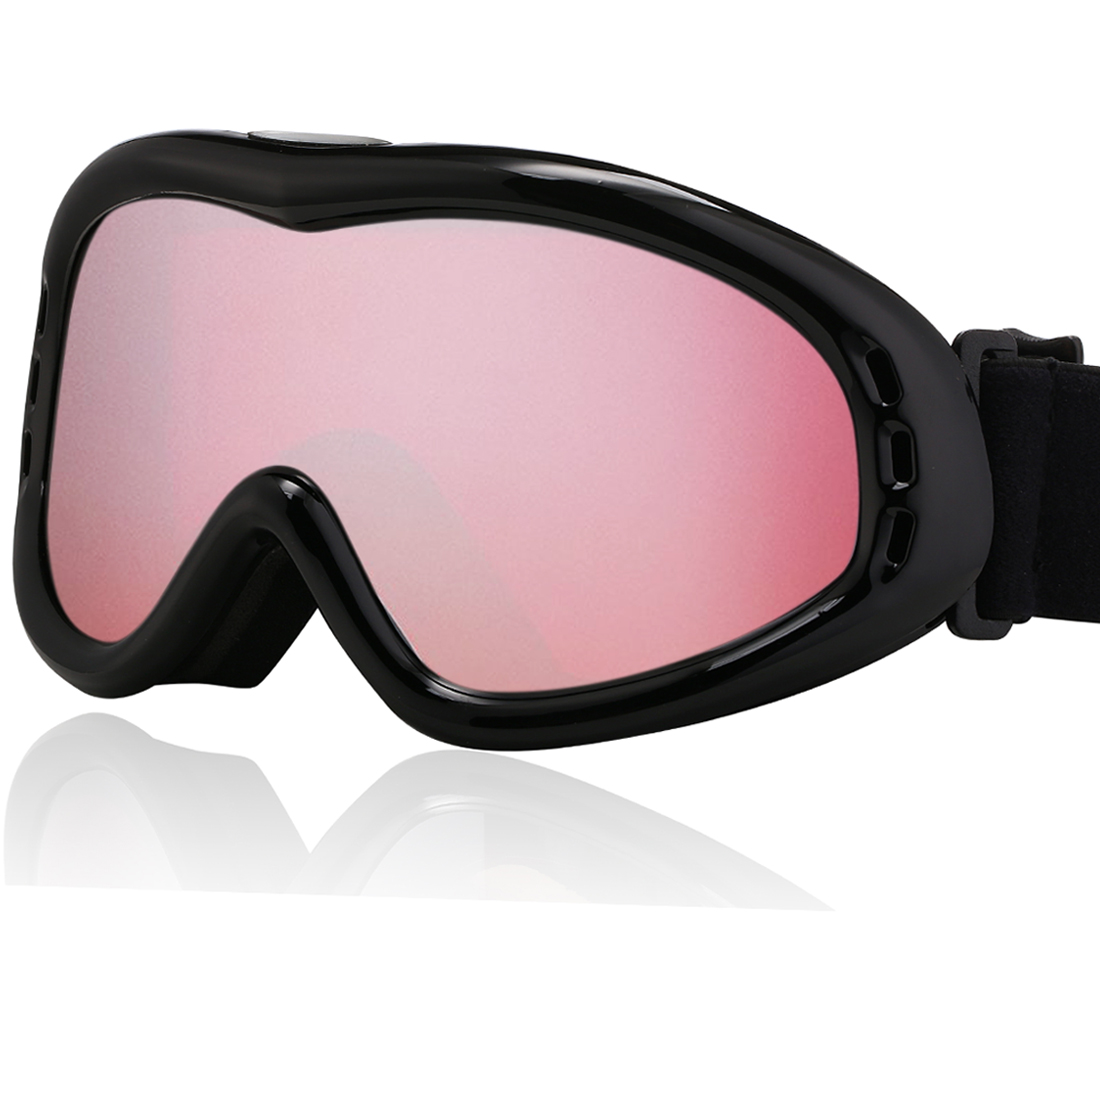 Ski Snowboard Goggles Glasses UV400 Protect Anti-fog Vermilion Men Women by Unique-Bargains